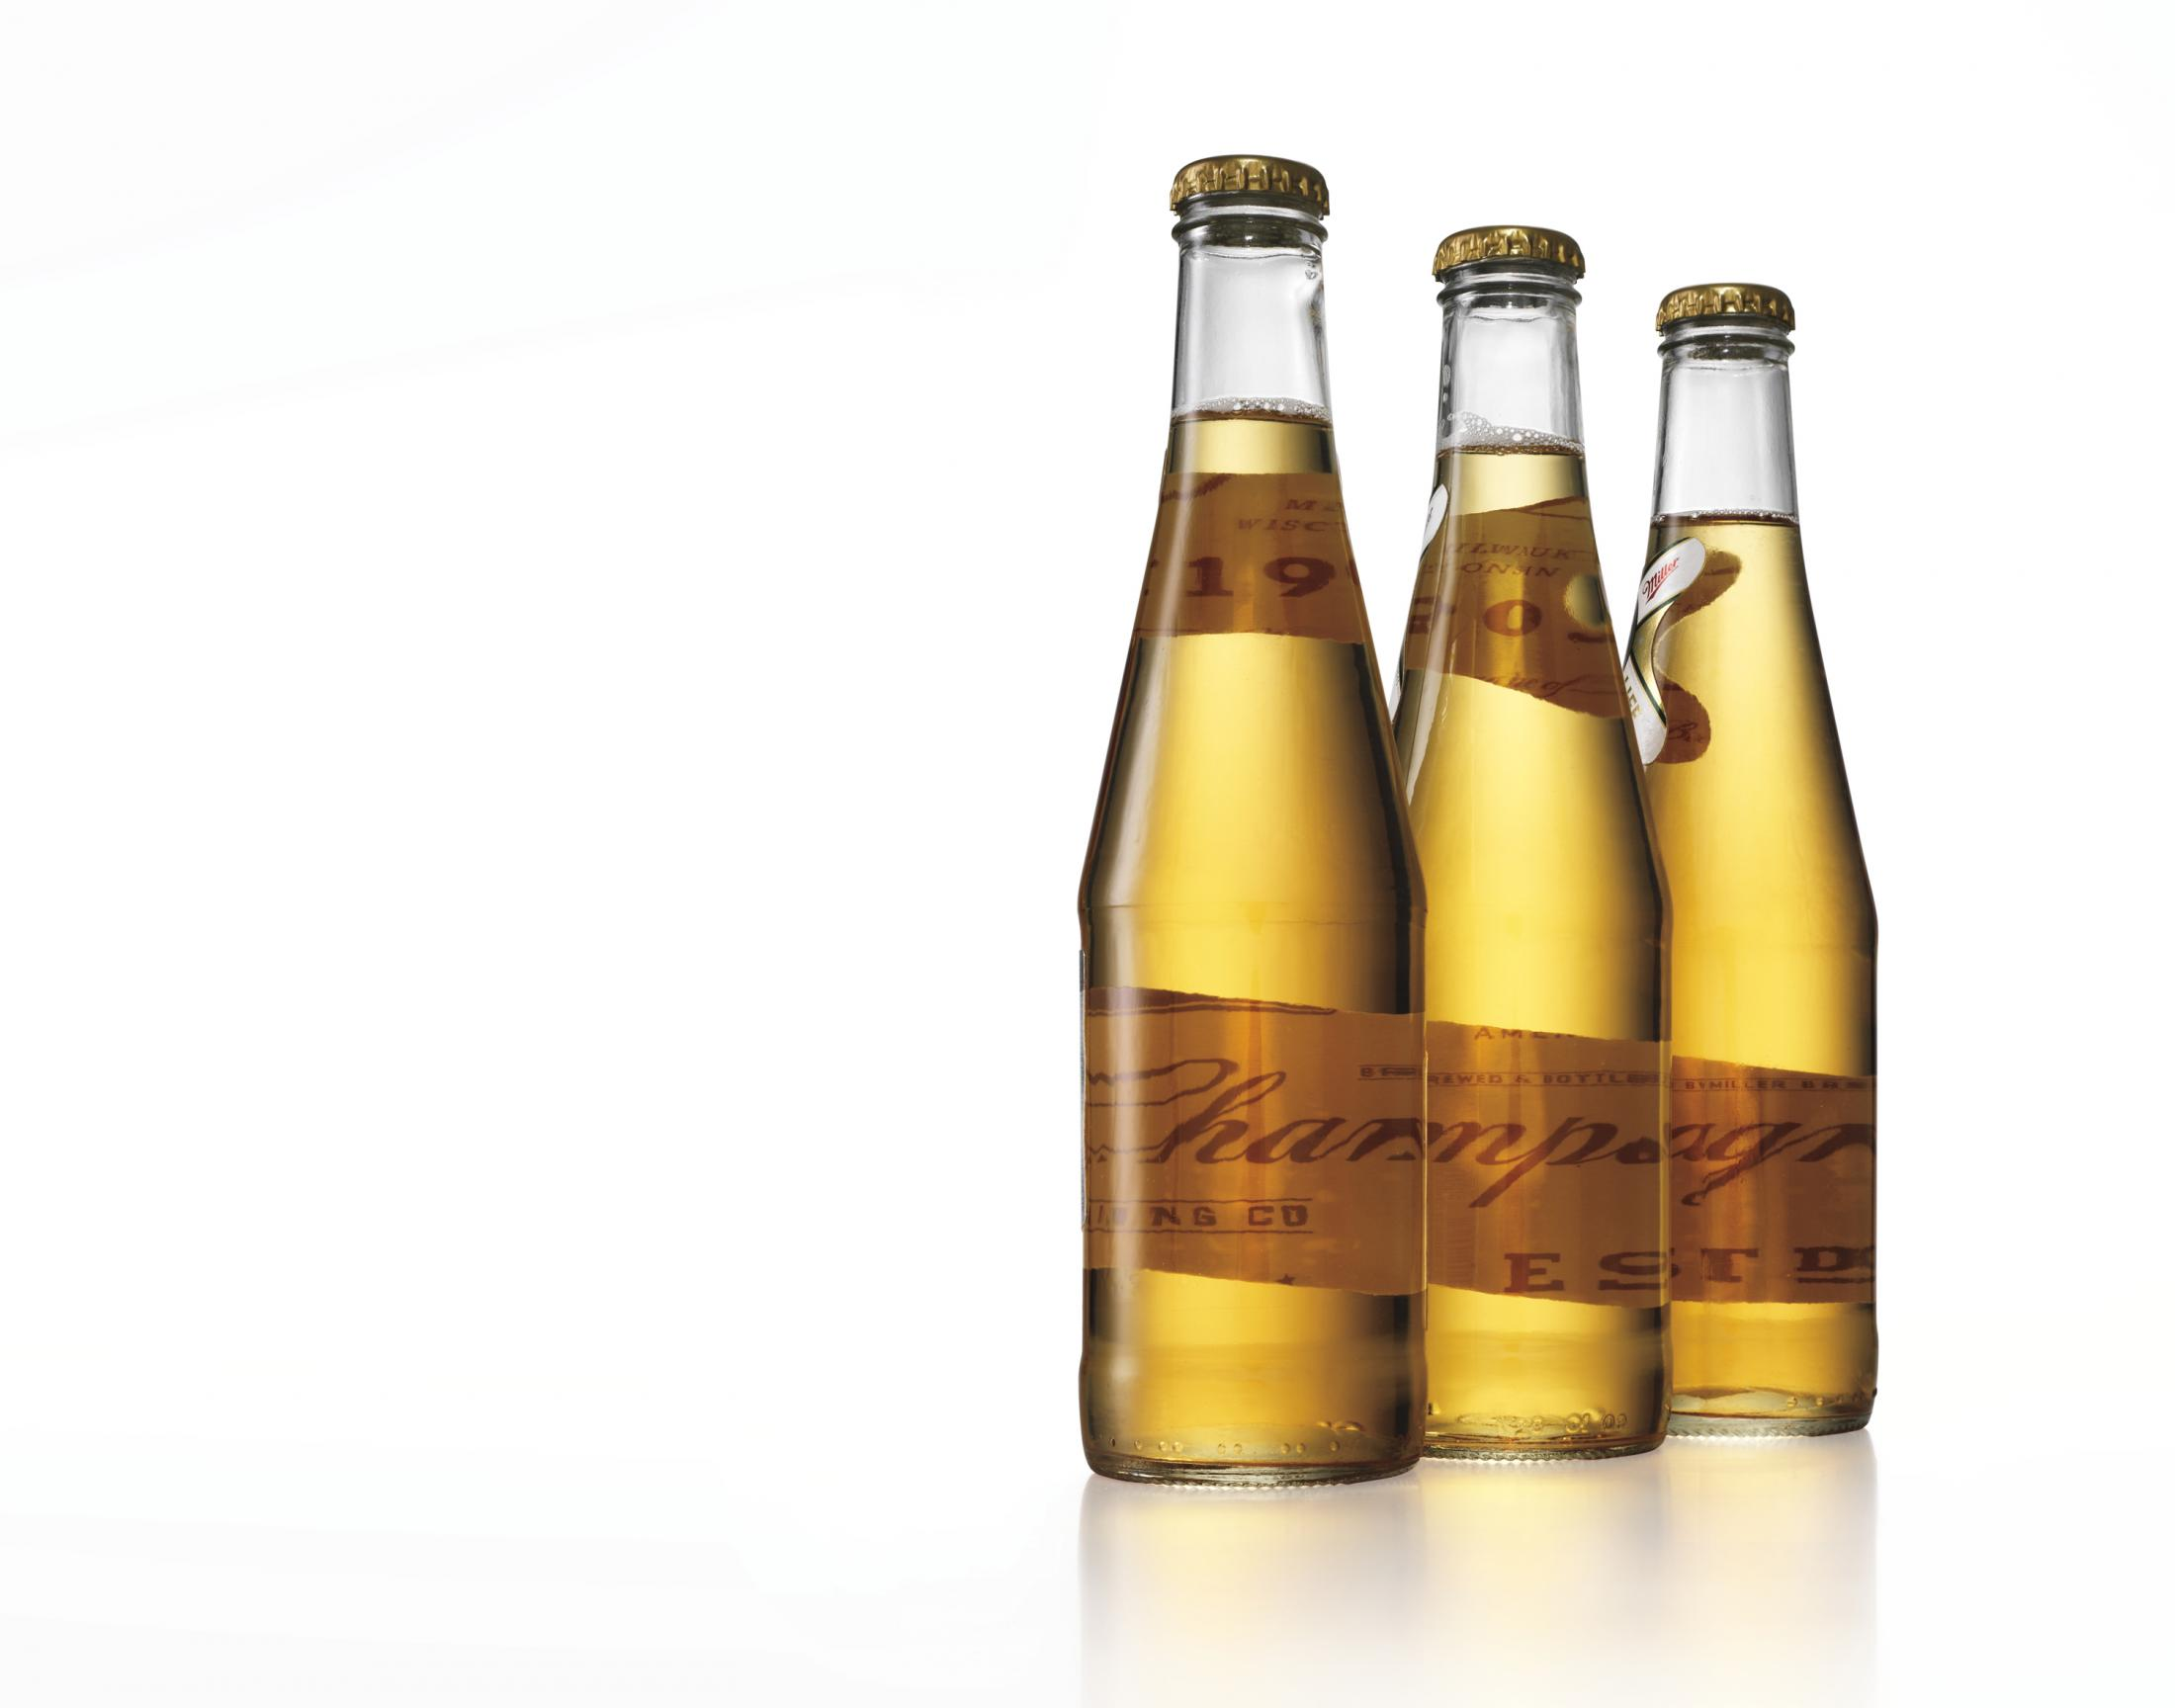 Thumbnail for Miller High Life Package Design and Visual Identity